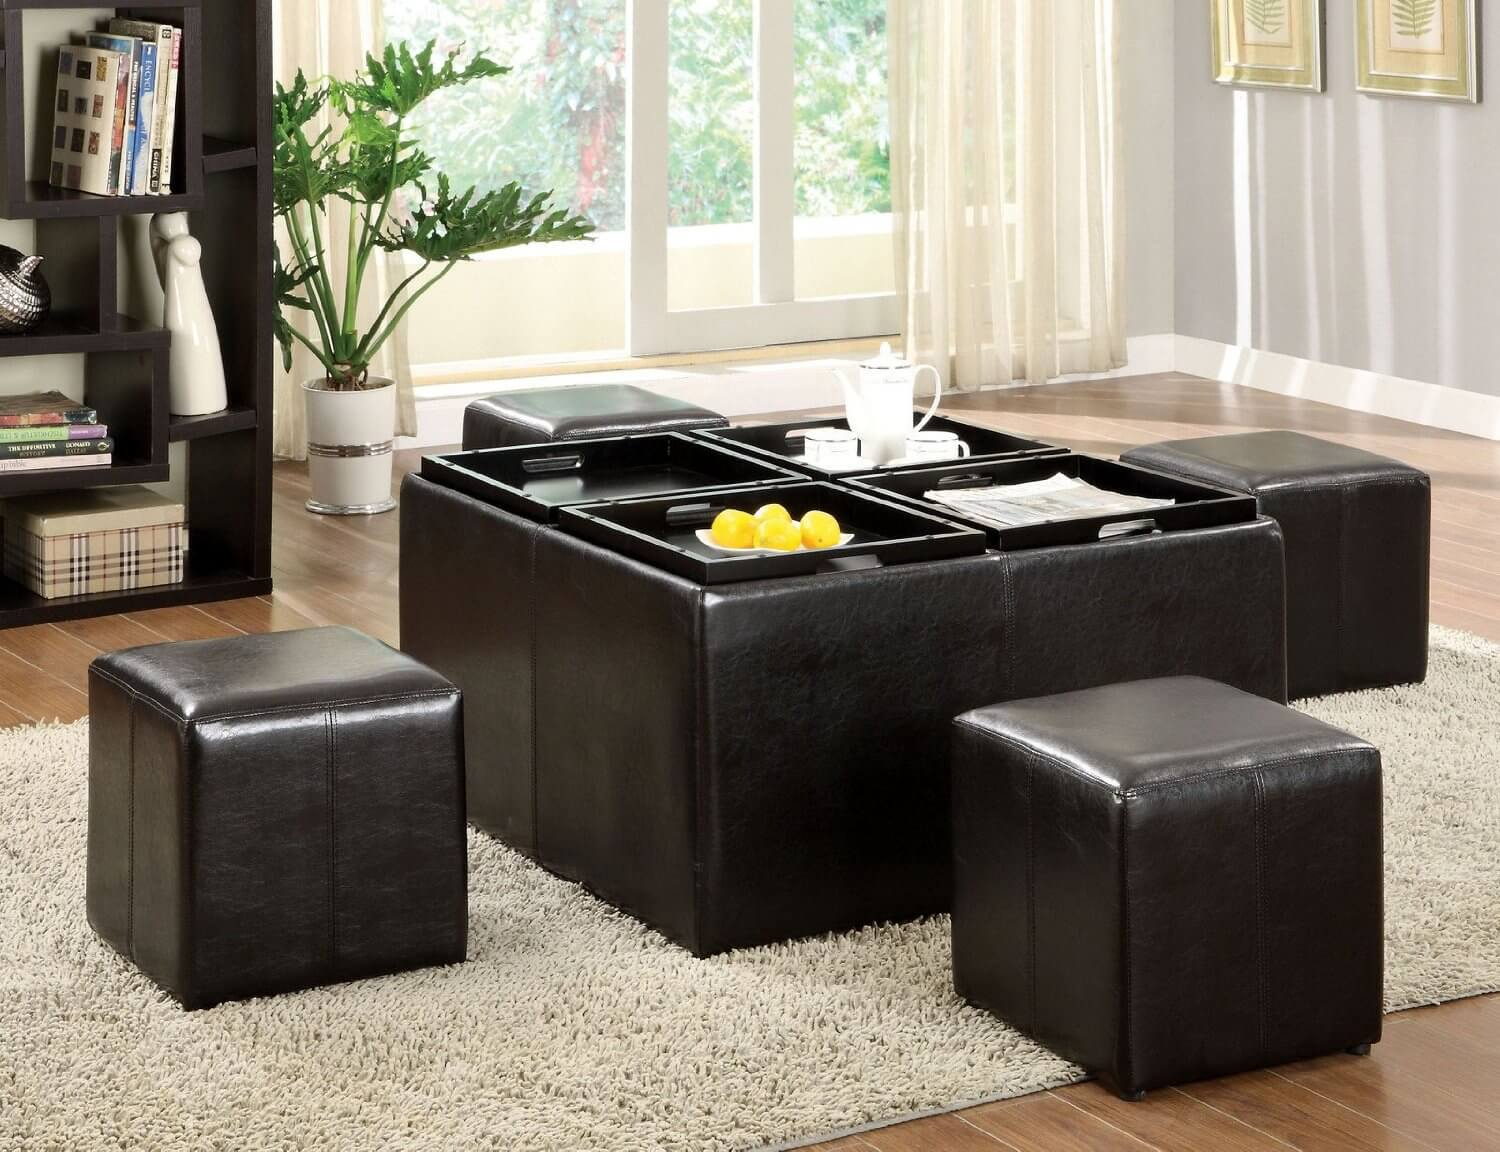 Nested ottomans combine many useful aspects of several designs, including storage capacity, reconfigurability, and versatility of placement. Models like the one pictured here allow for a large amount of storage, tablet dining, and an array of separate pieces for feet or for seating.